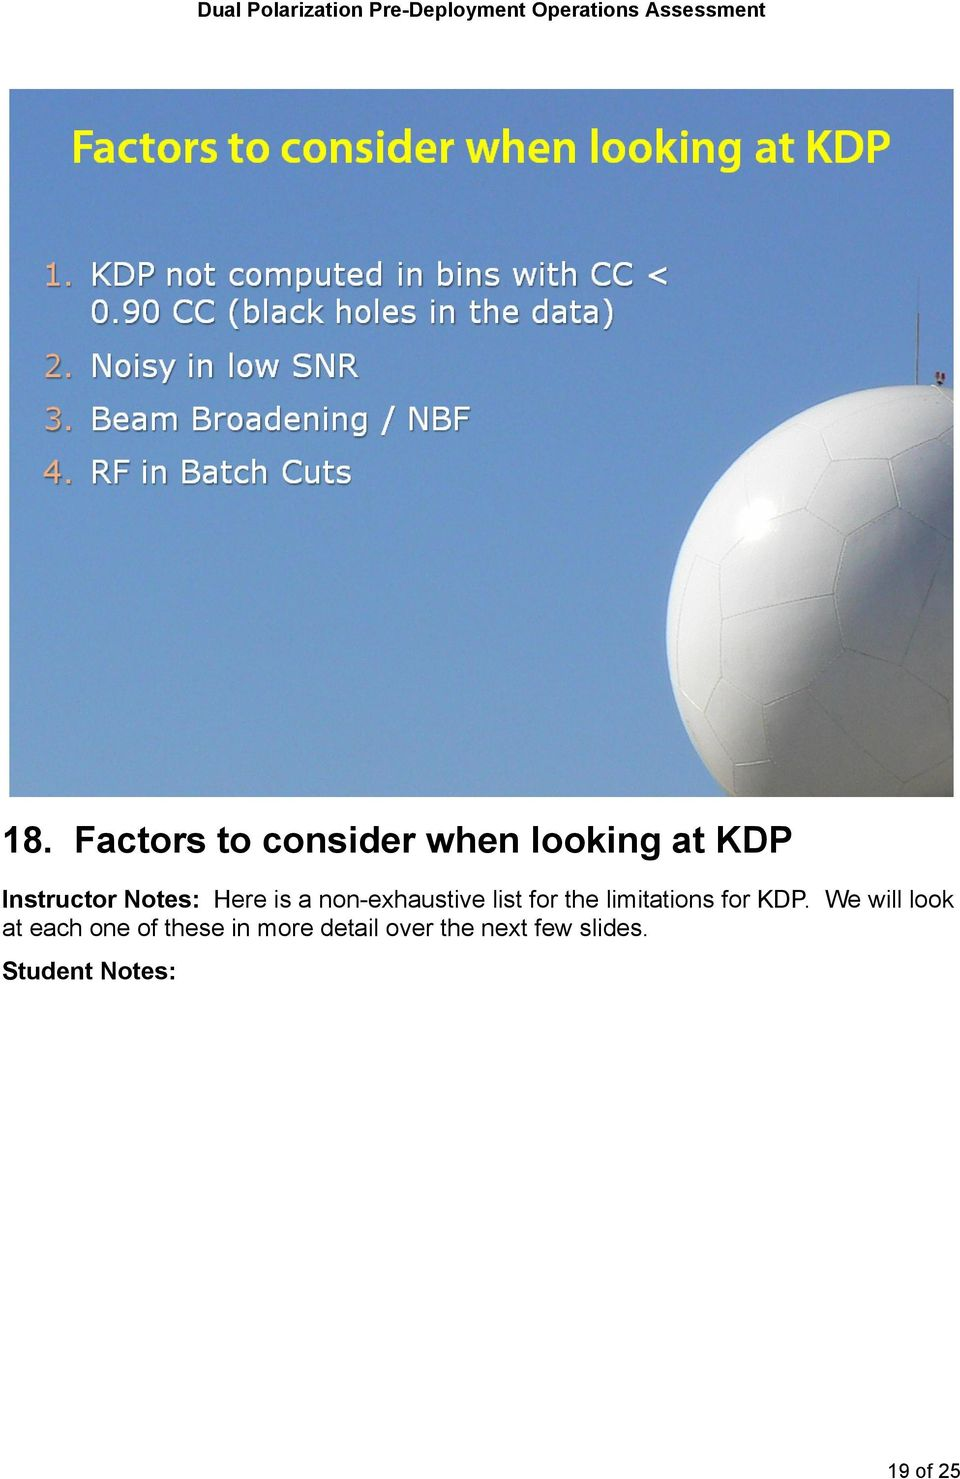 for the limitations for KDP.